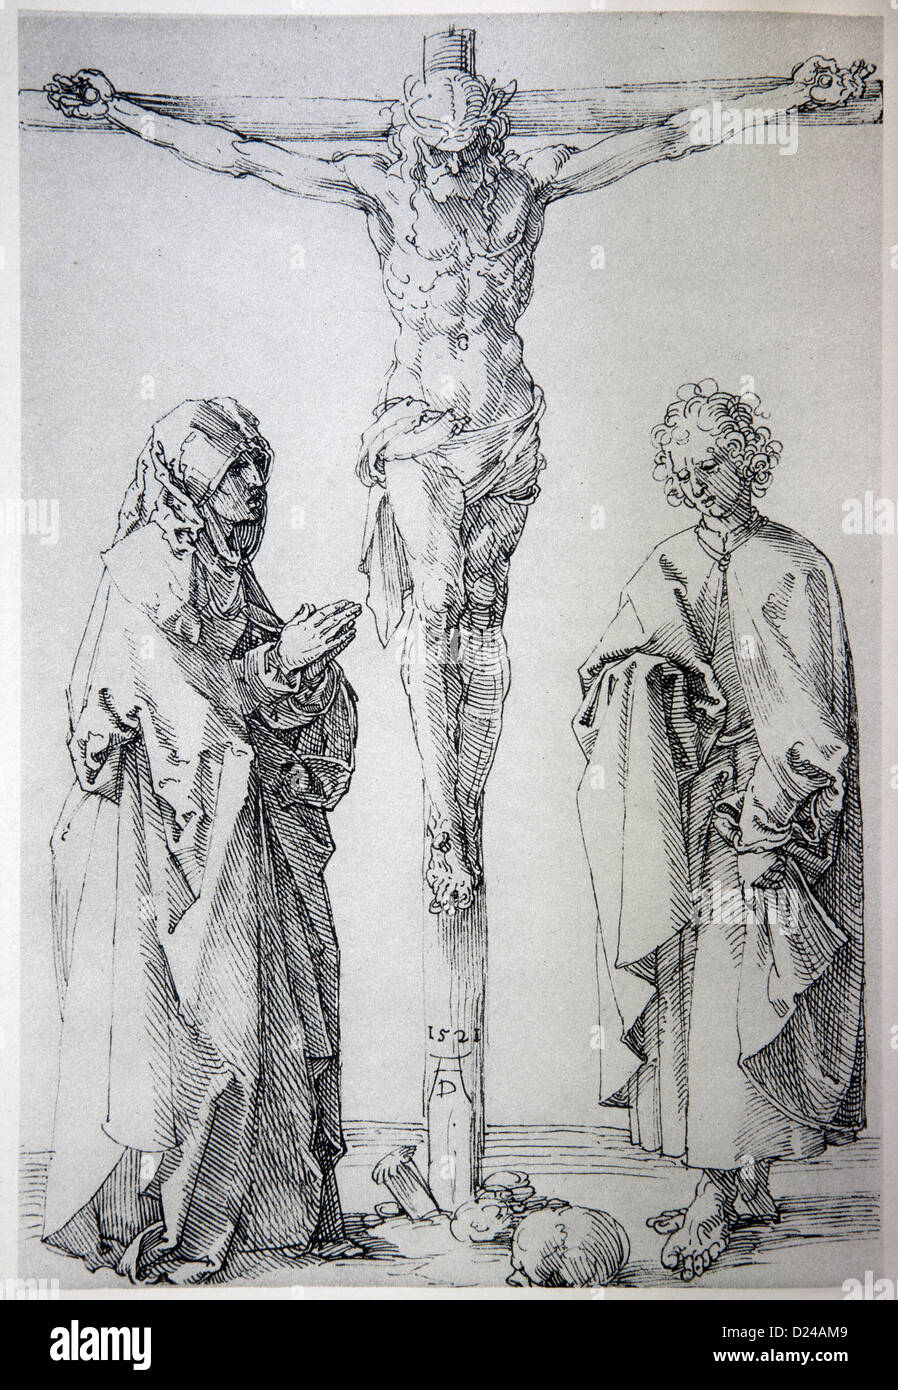 GERMANY - 1928: Lithography of Jesus on the cross by Albert Durer - Stock Image